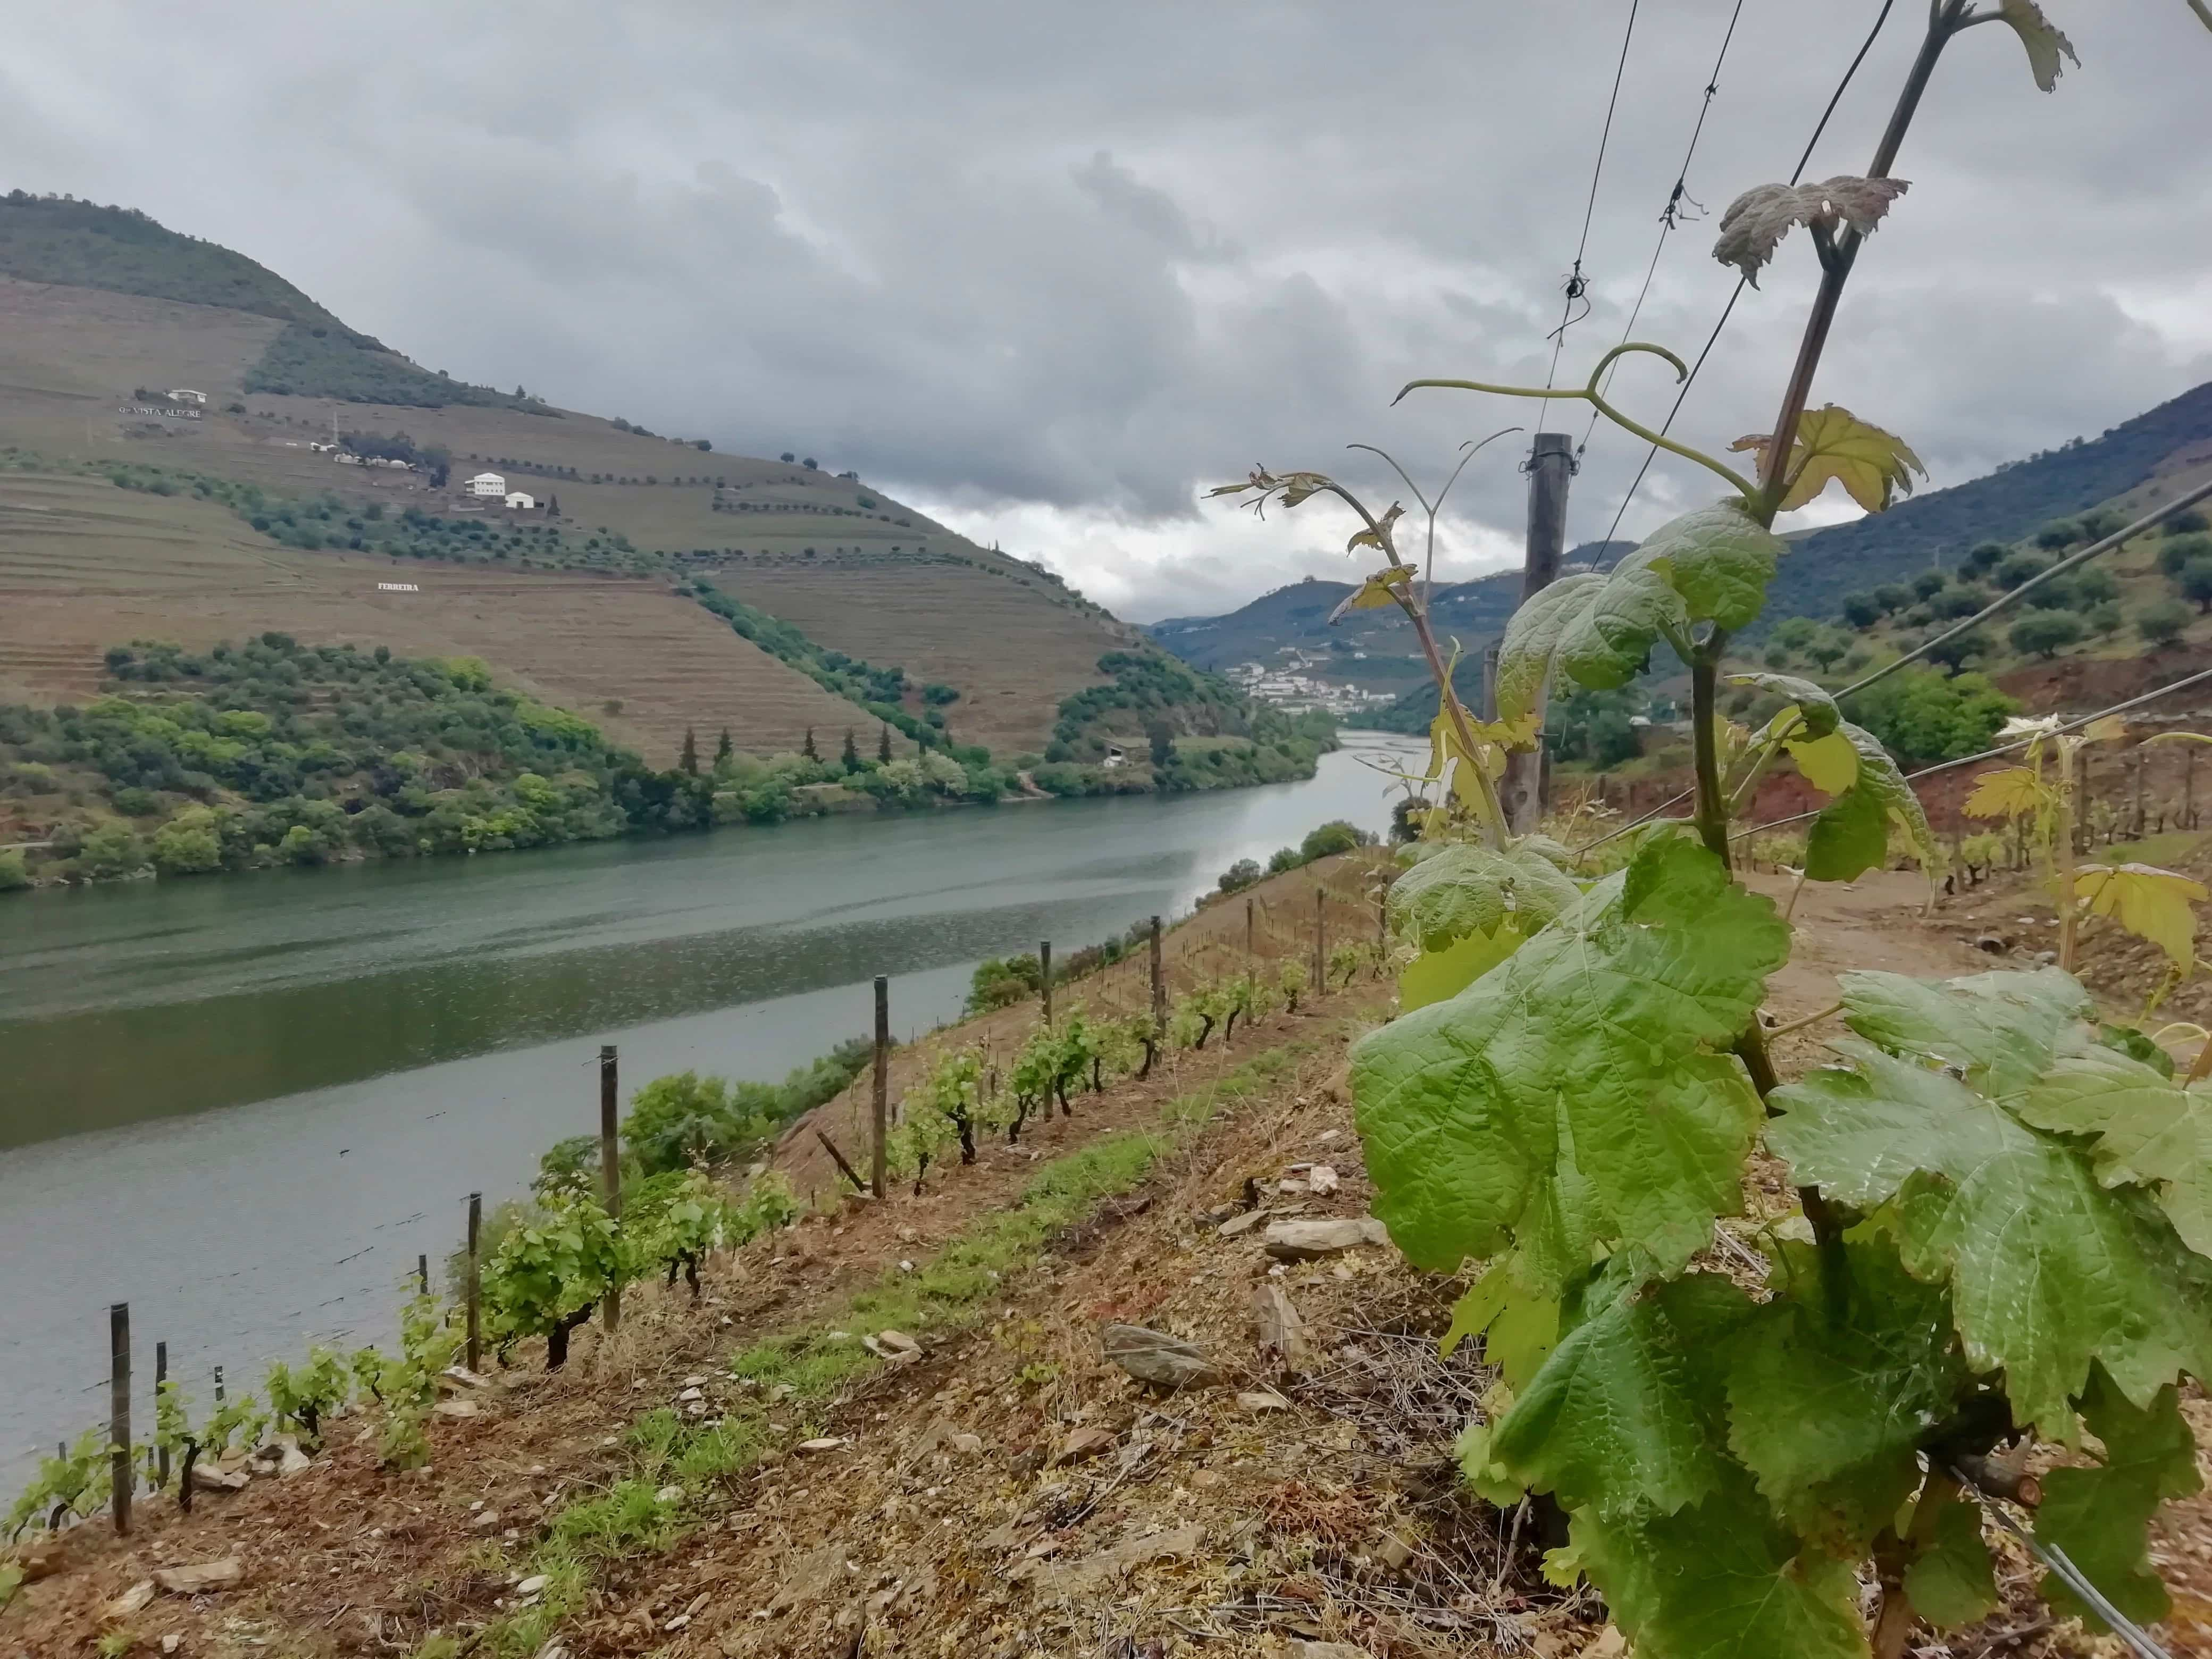 Vineyard in the Douro Valley, Portugal